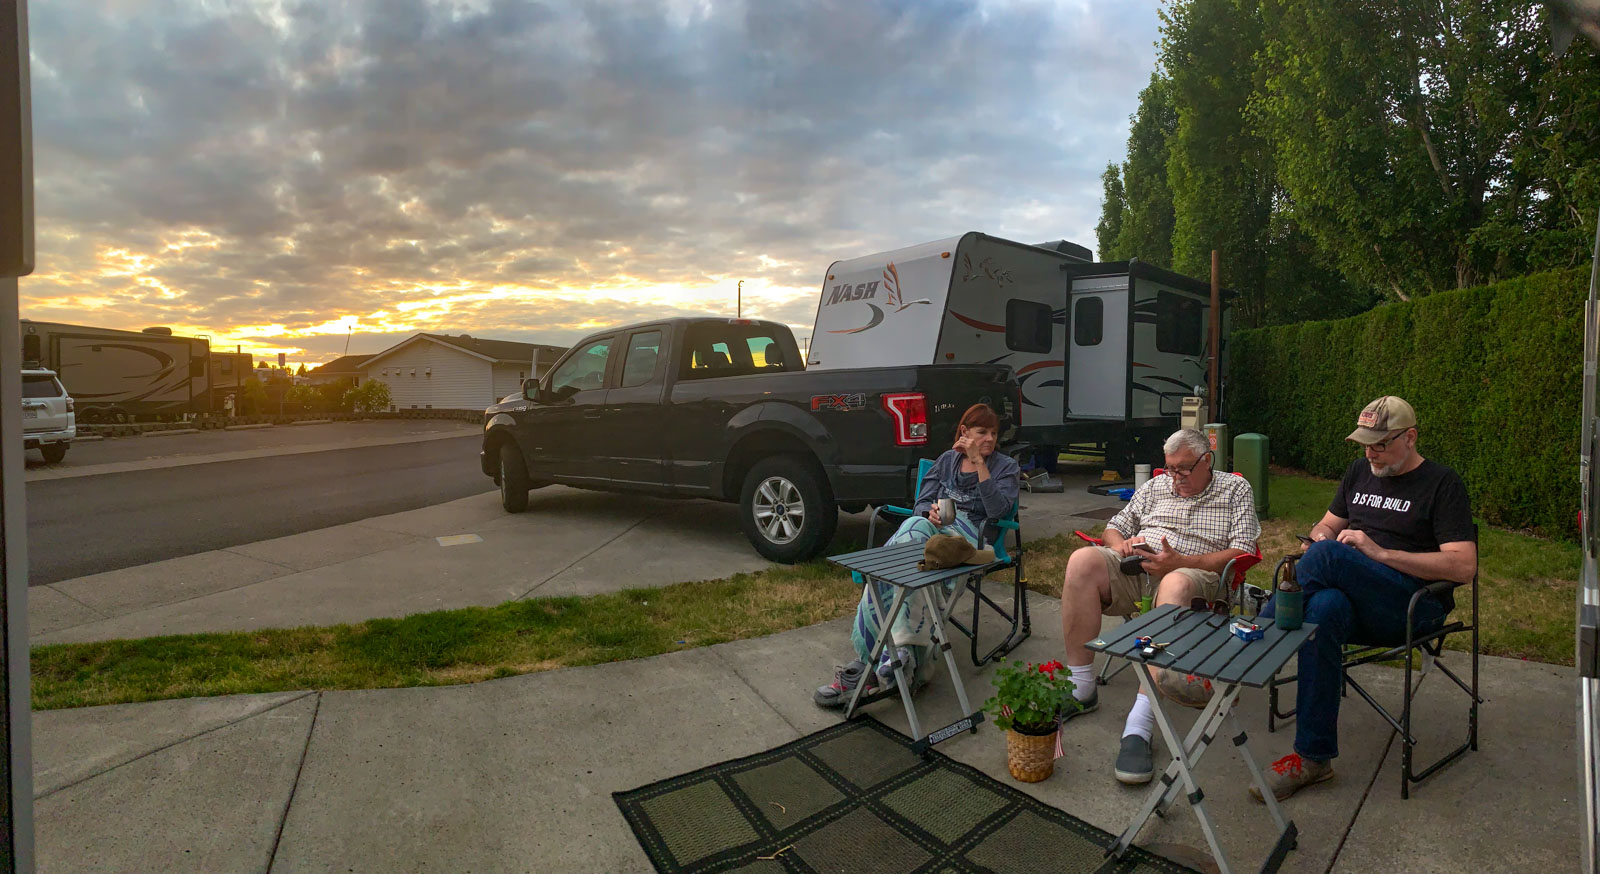 Sunset at the RV park